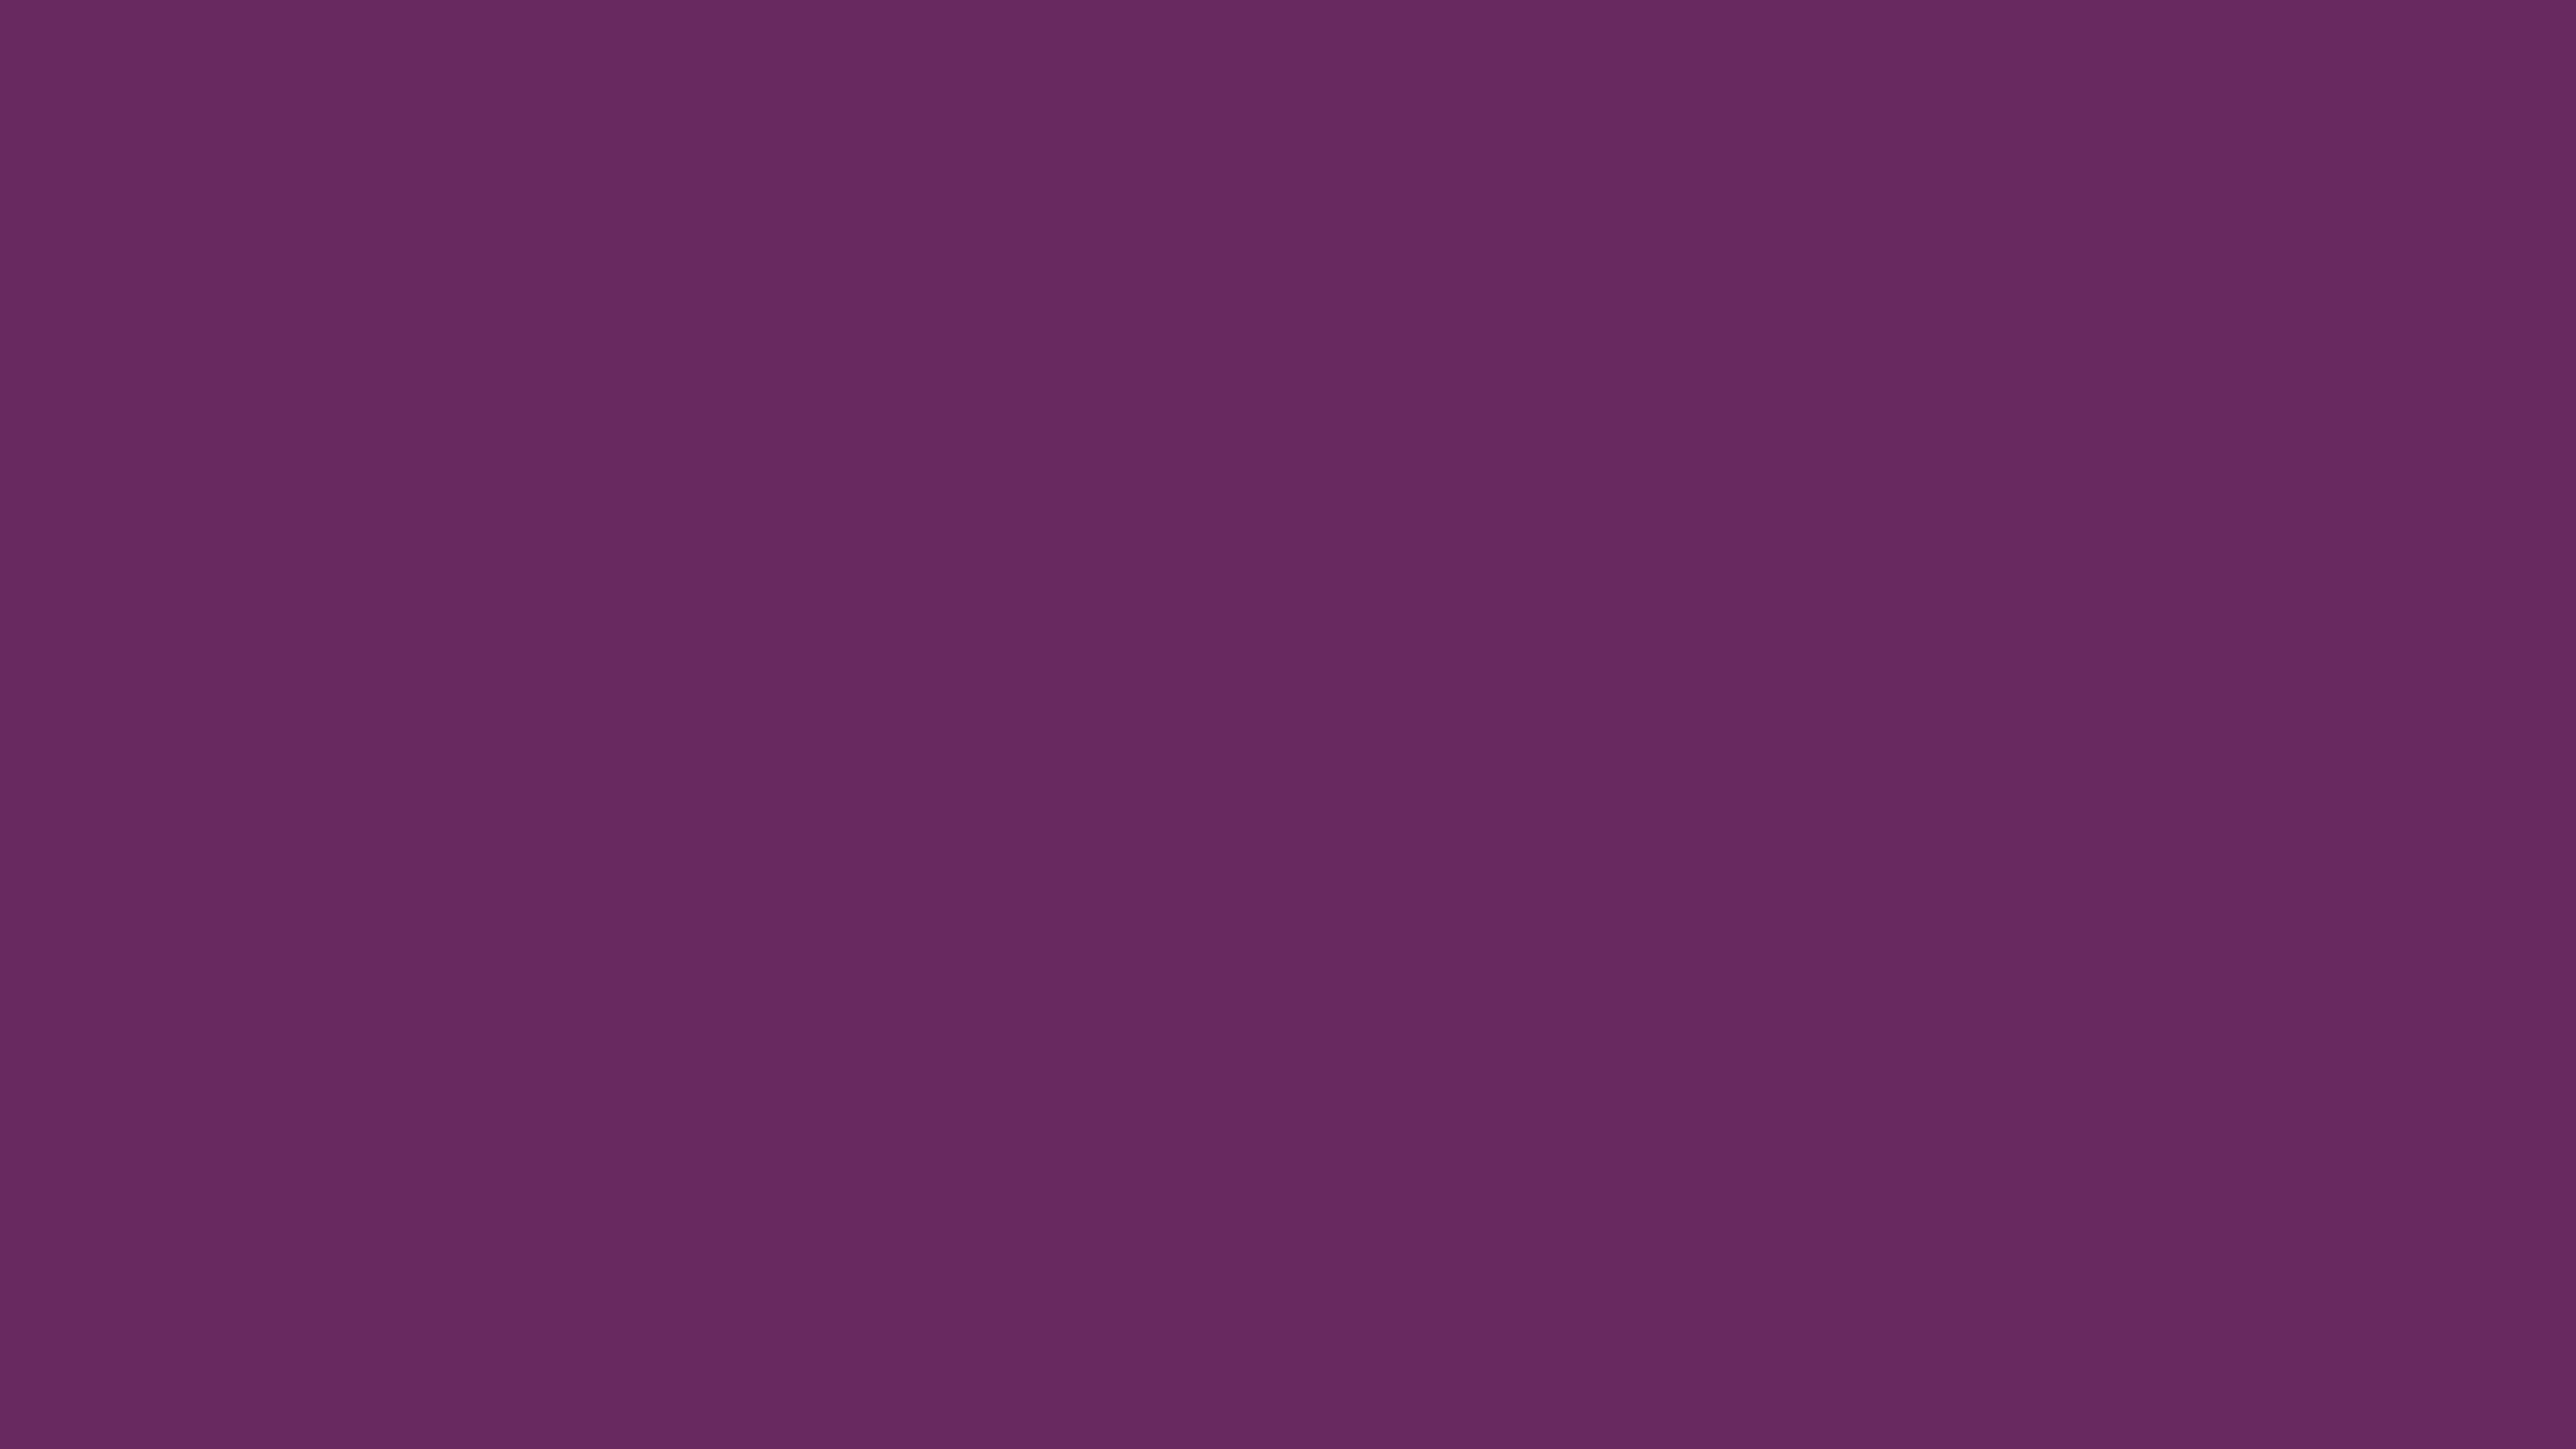 7680x4320 Palatinate Purple Solid Color Background